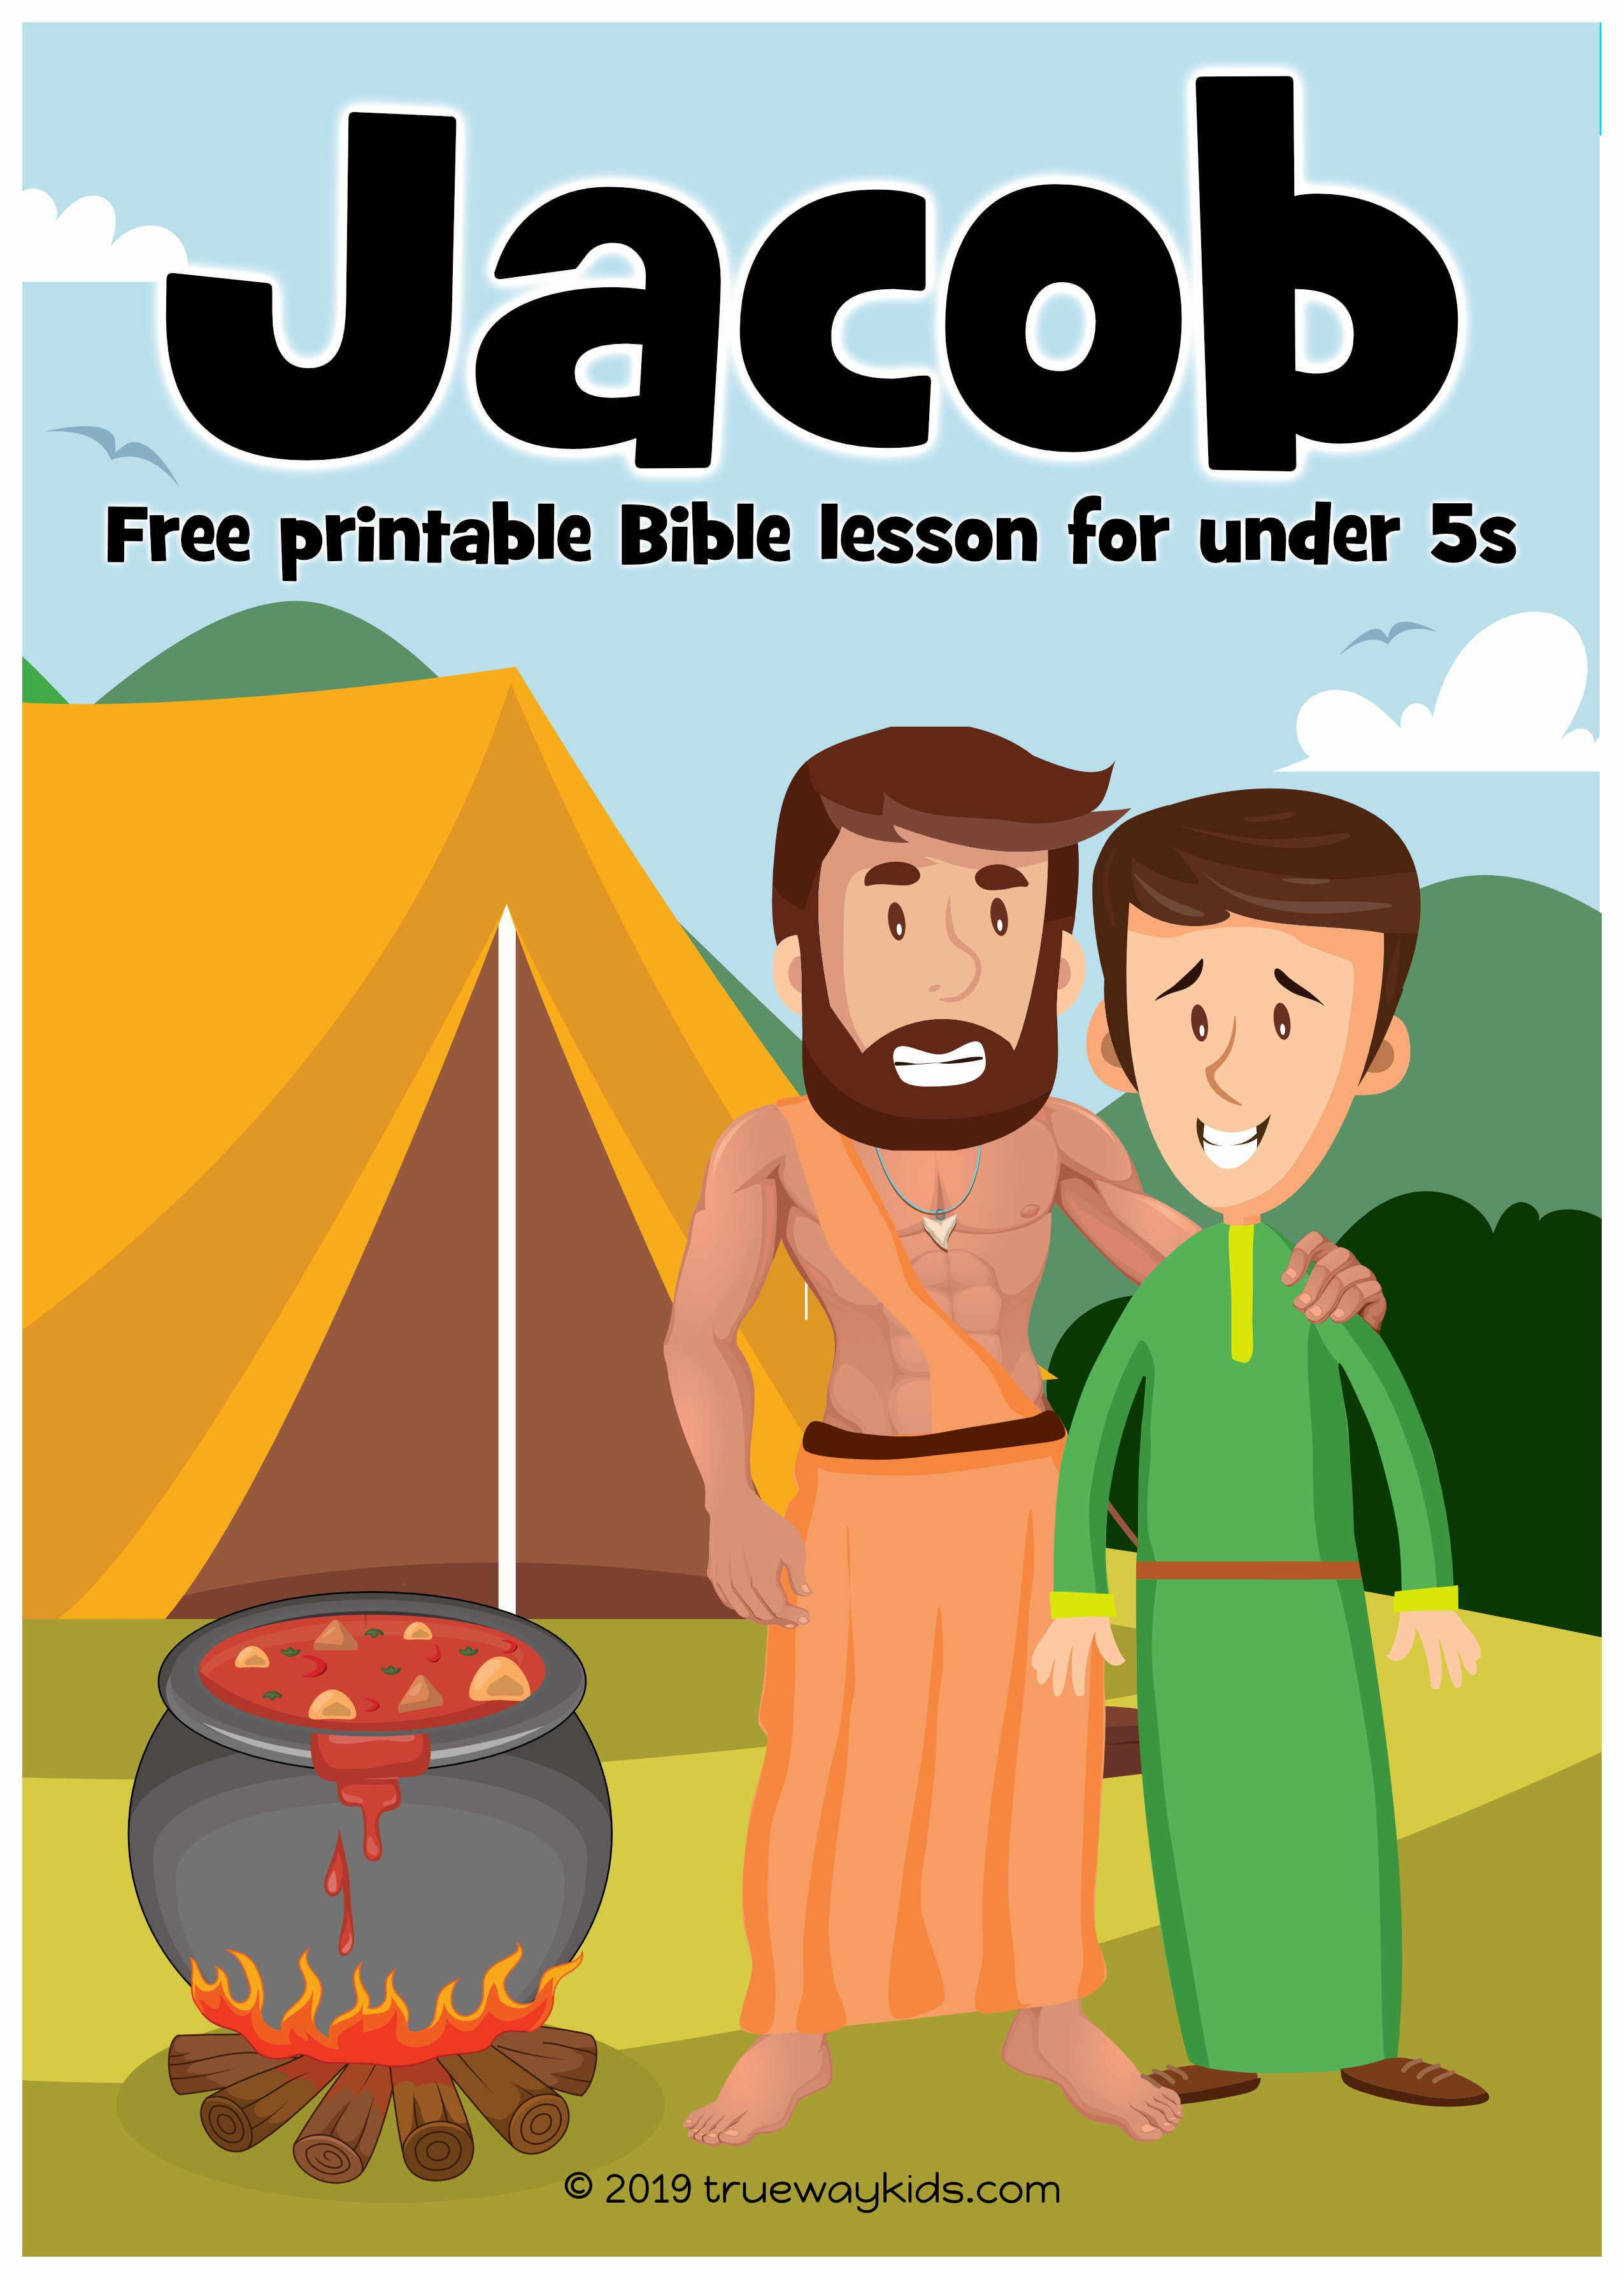 Jacob Preschool Bible Lesson Learn About How God Can Change Our Life Games Crafts Activities